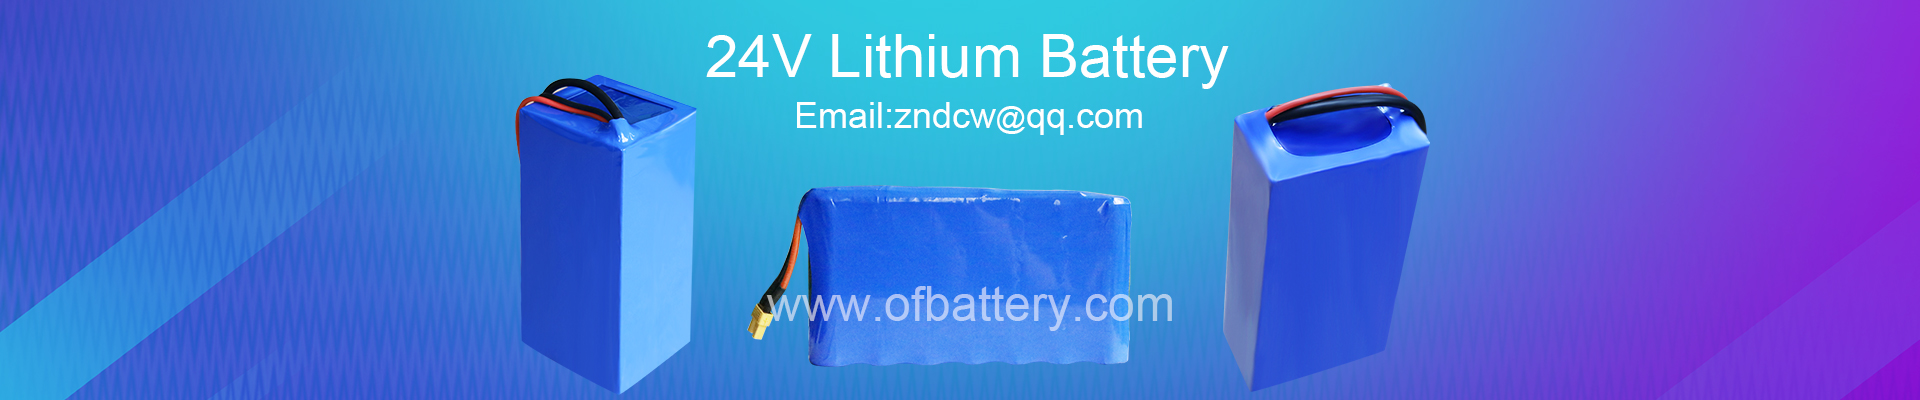 Lithium battery technology